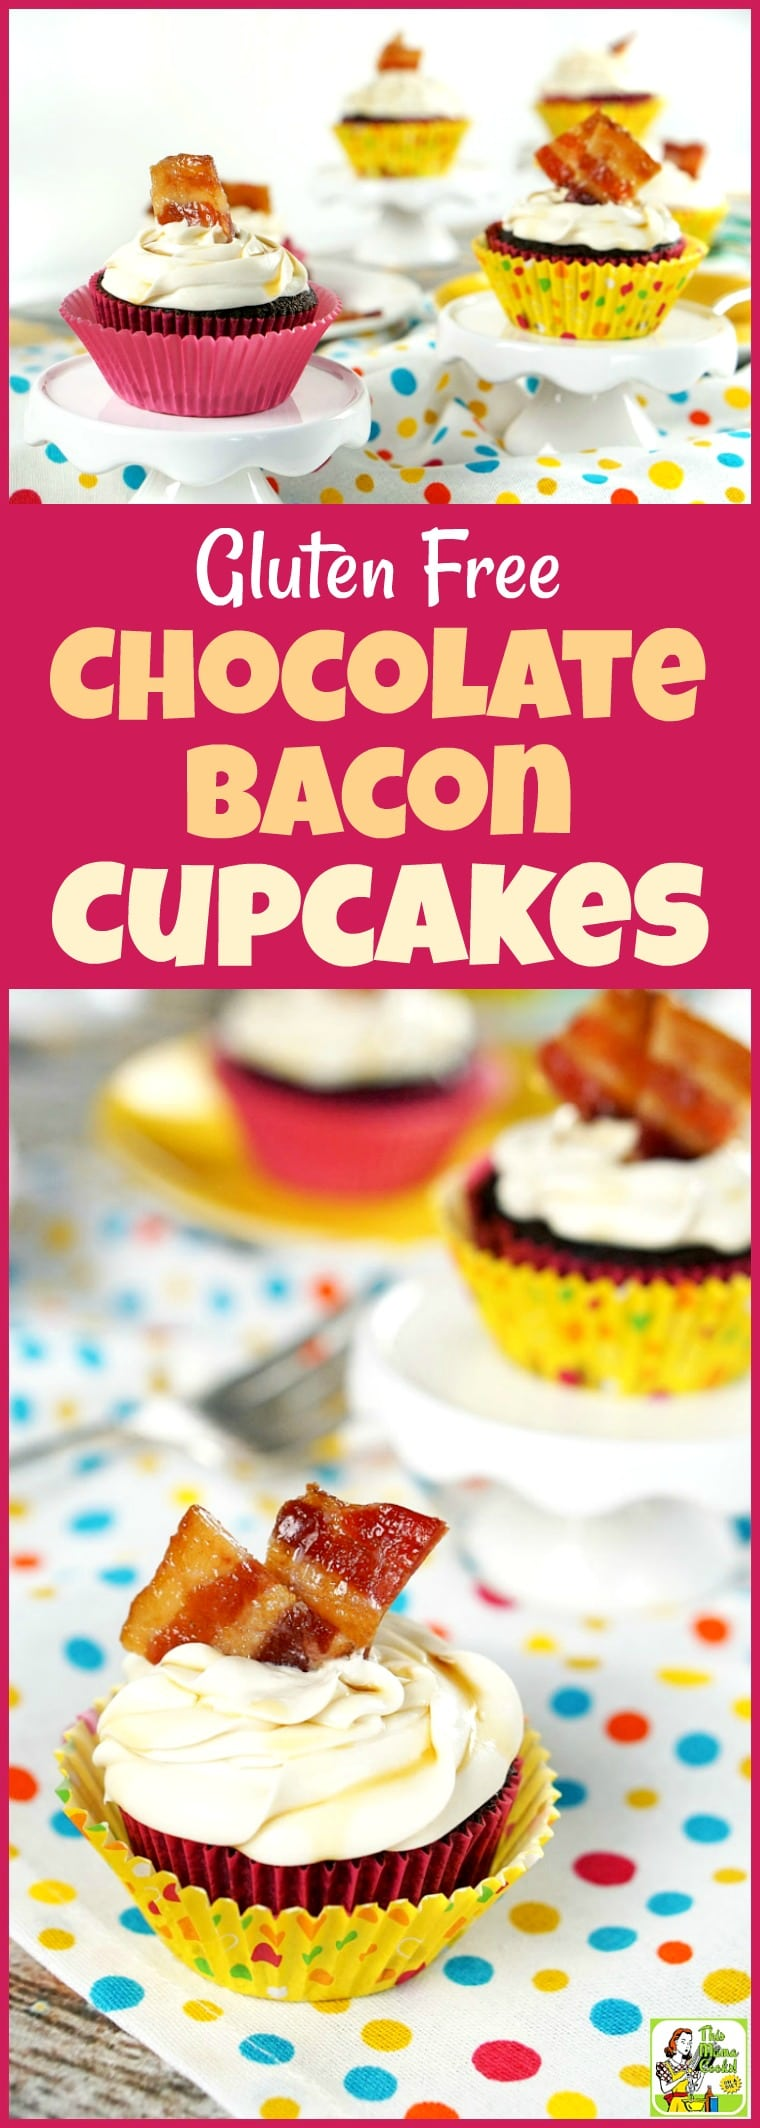 Love maple bacon? Then you\'ll want to make this Gluten Free Chocolate Bacon Cupcakes recipe! These bacon cupcakes are super easy to make since you\'ll be using store bought gluten free cake mix and frosting. #recipe #easy #recipeoftheday #healthyrecipes #glutenfree #easyrecipes#snack #snacks #dessert #dessertrecipes #baking #cupcakes #bacon #maple #chocolate #whiskey